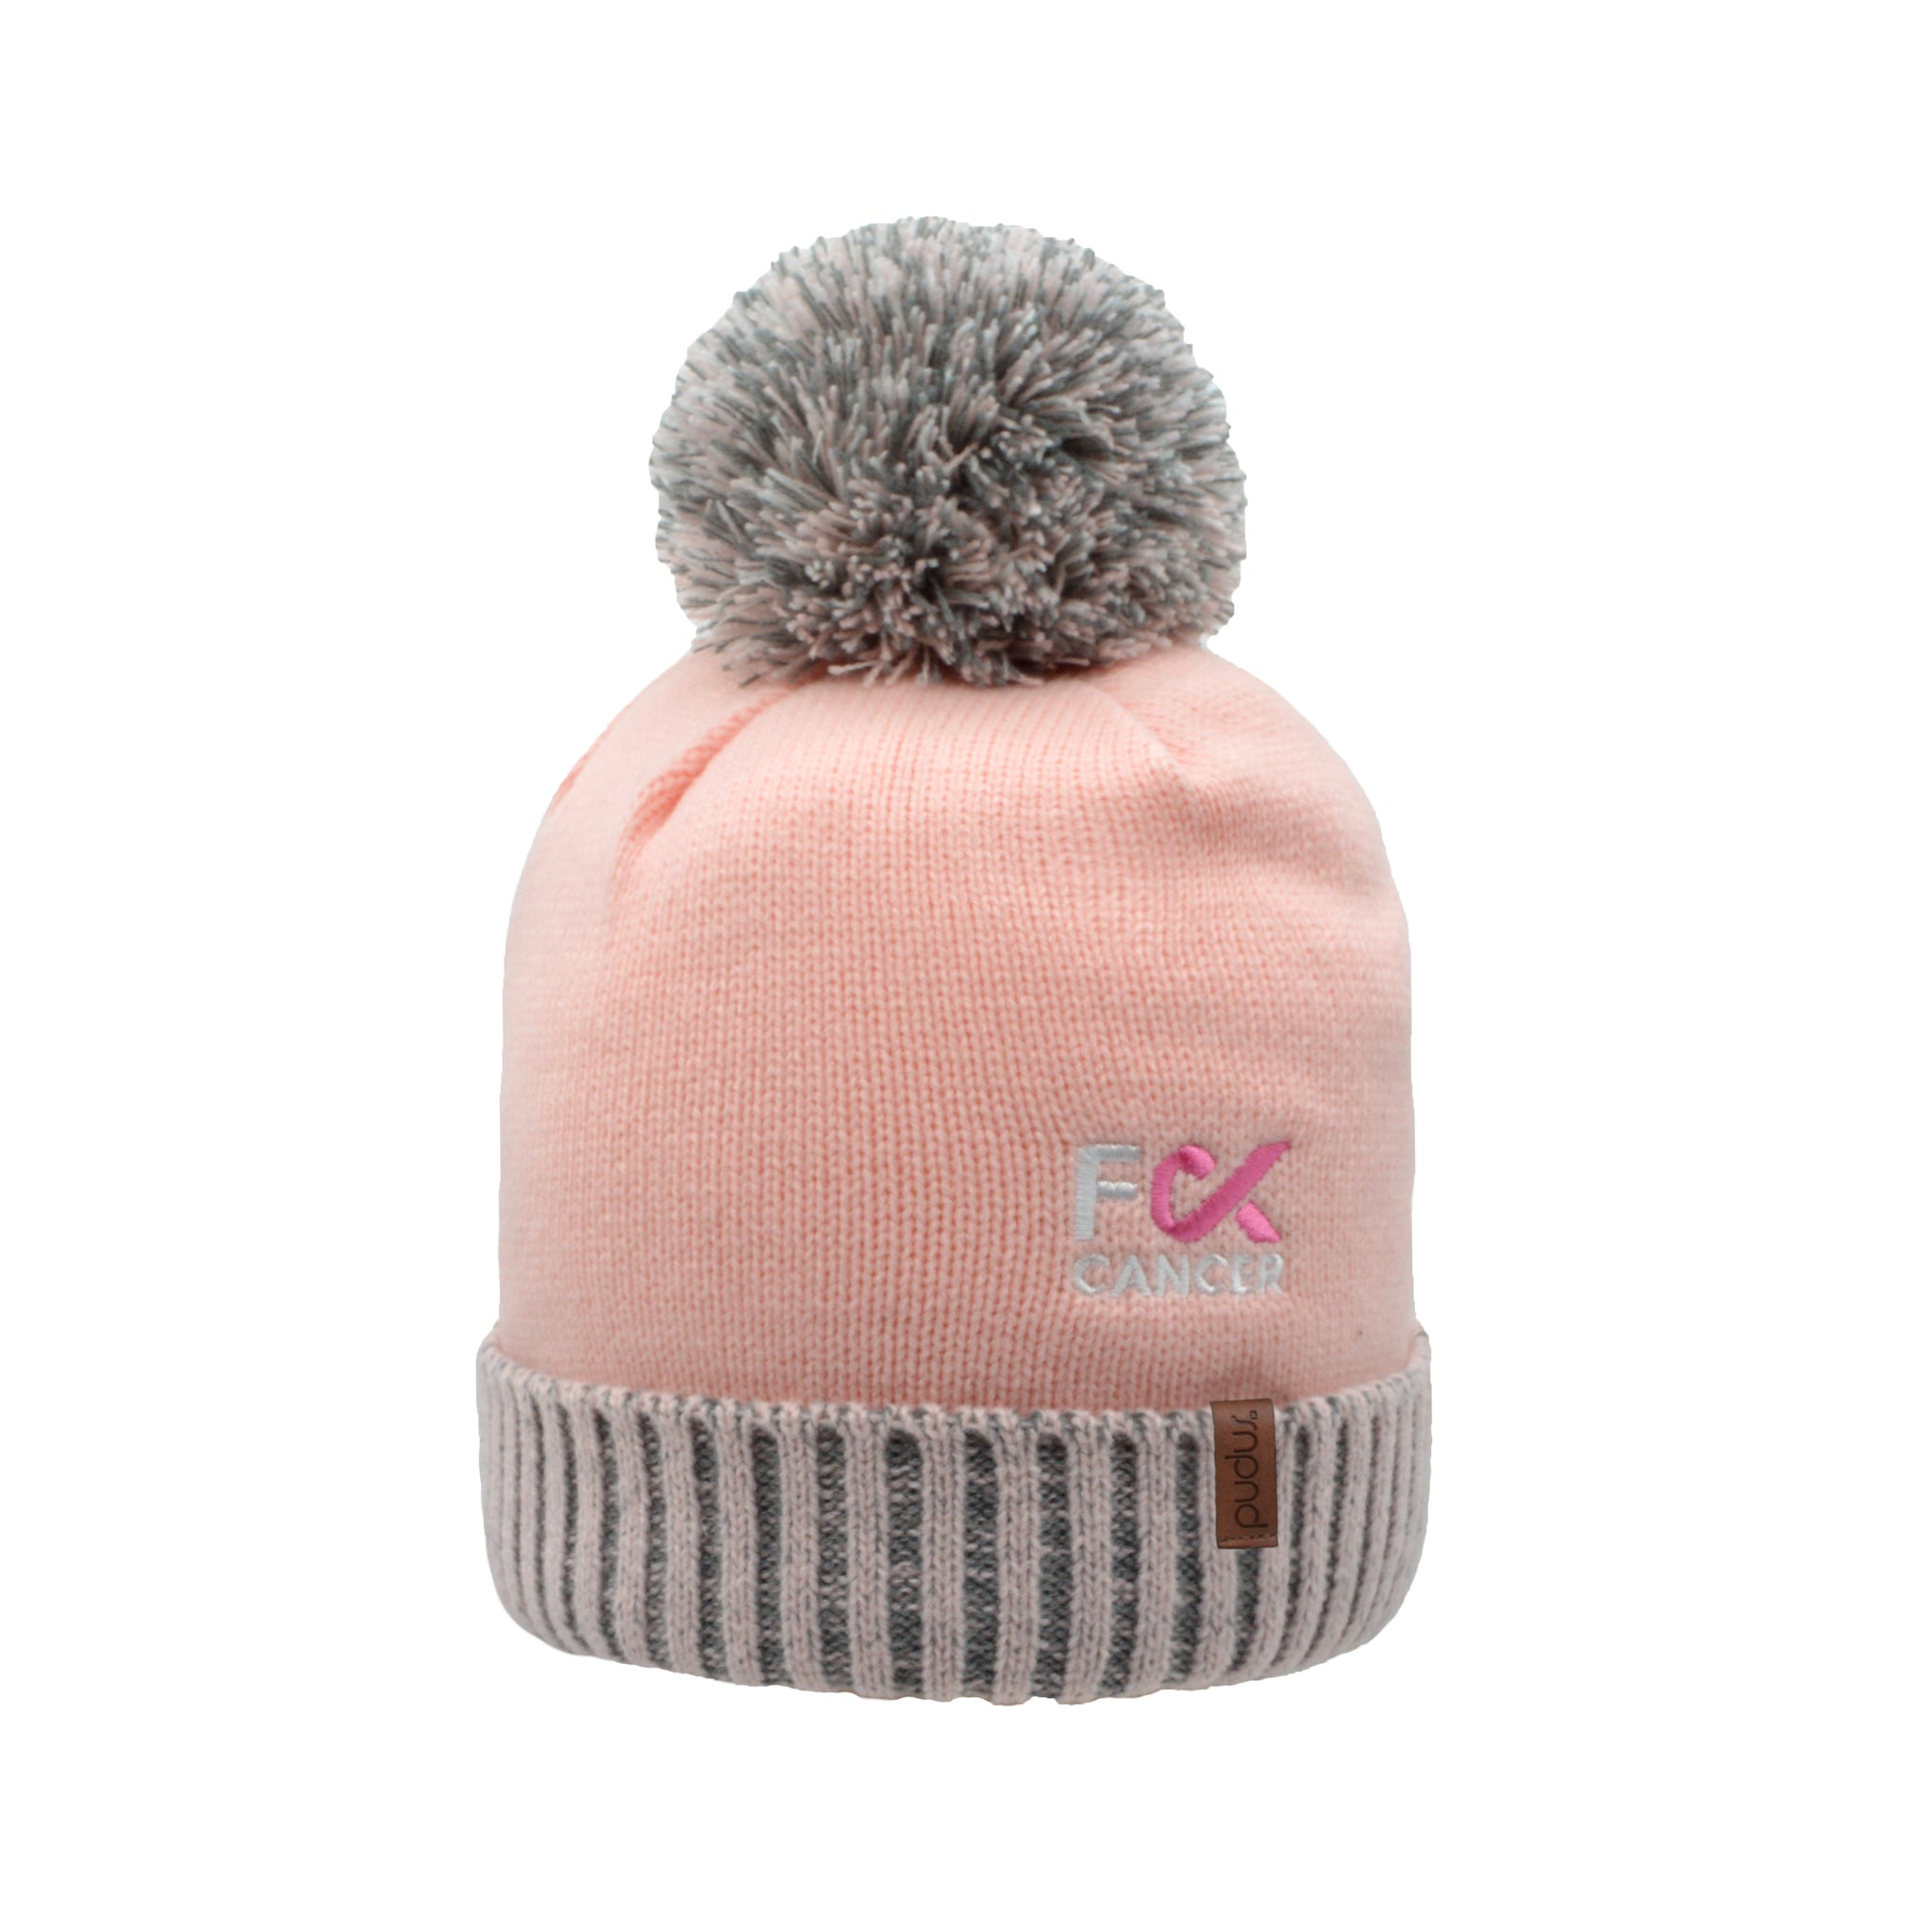 F Cancer x Pudus Beanie Hat | Pink